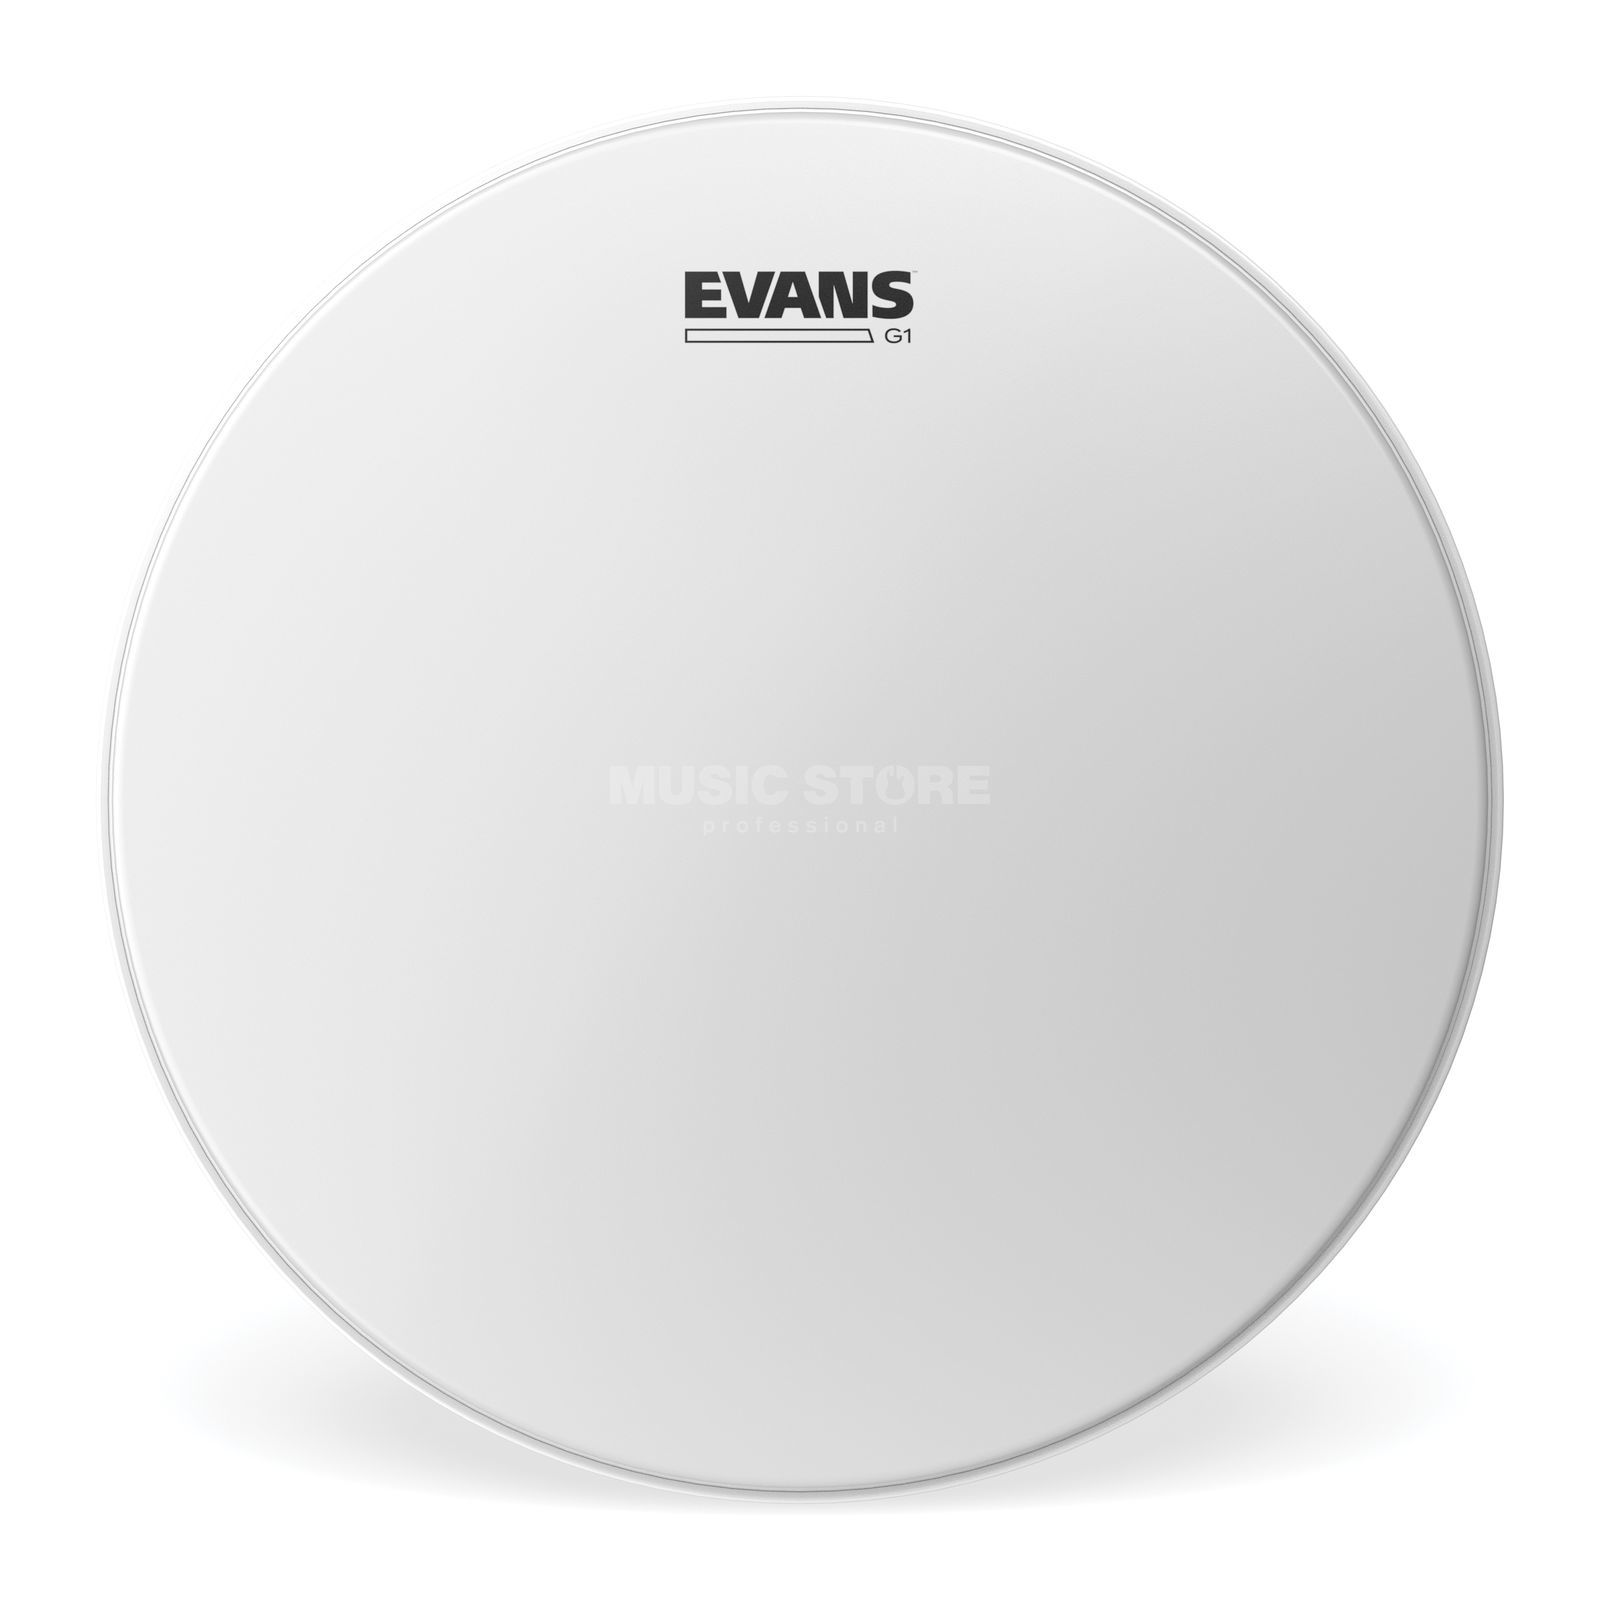 "Evans G1 Coated 8"", B08G1, Tom Batter Produktbild"